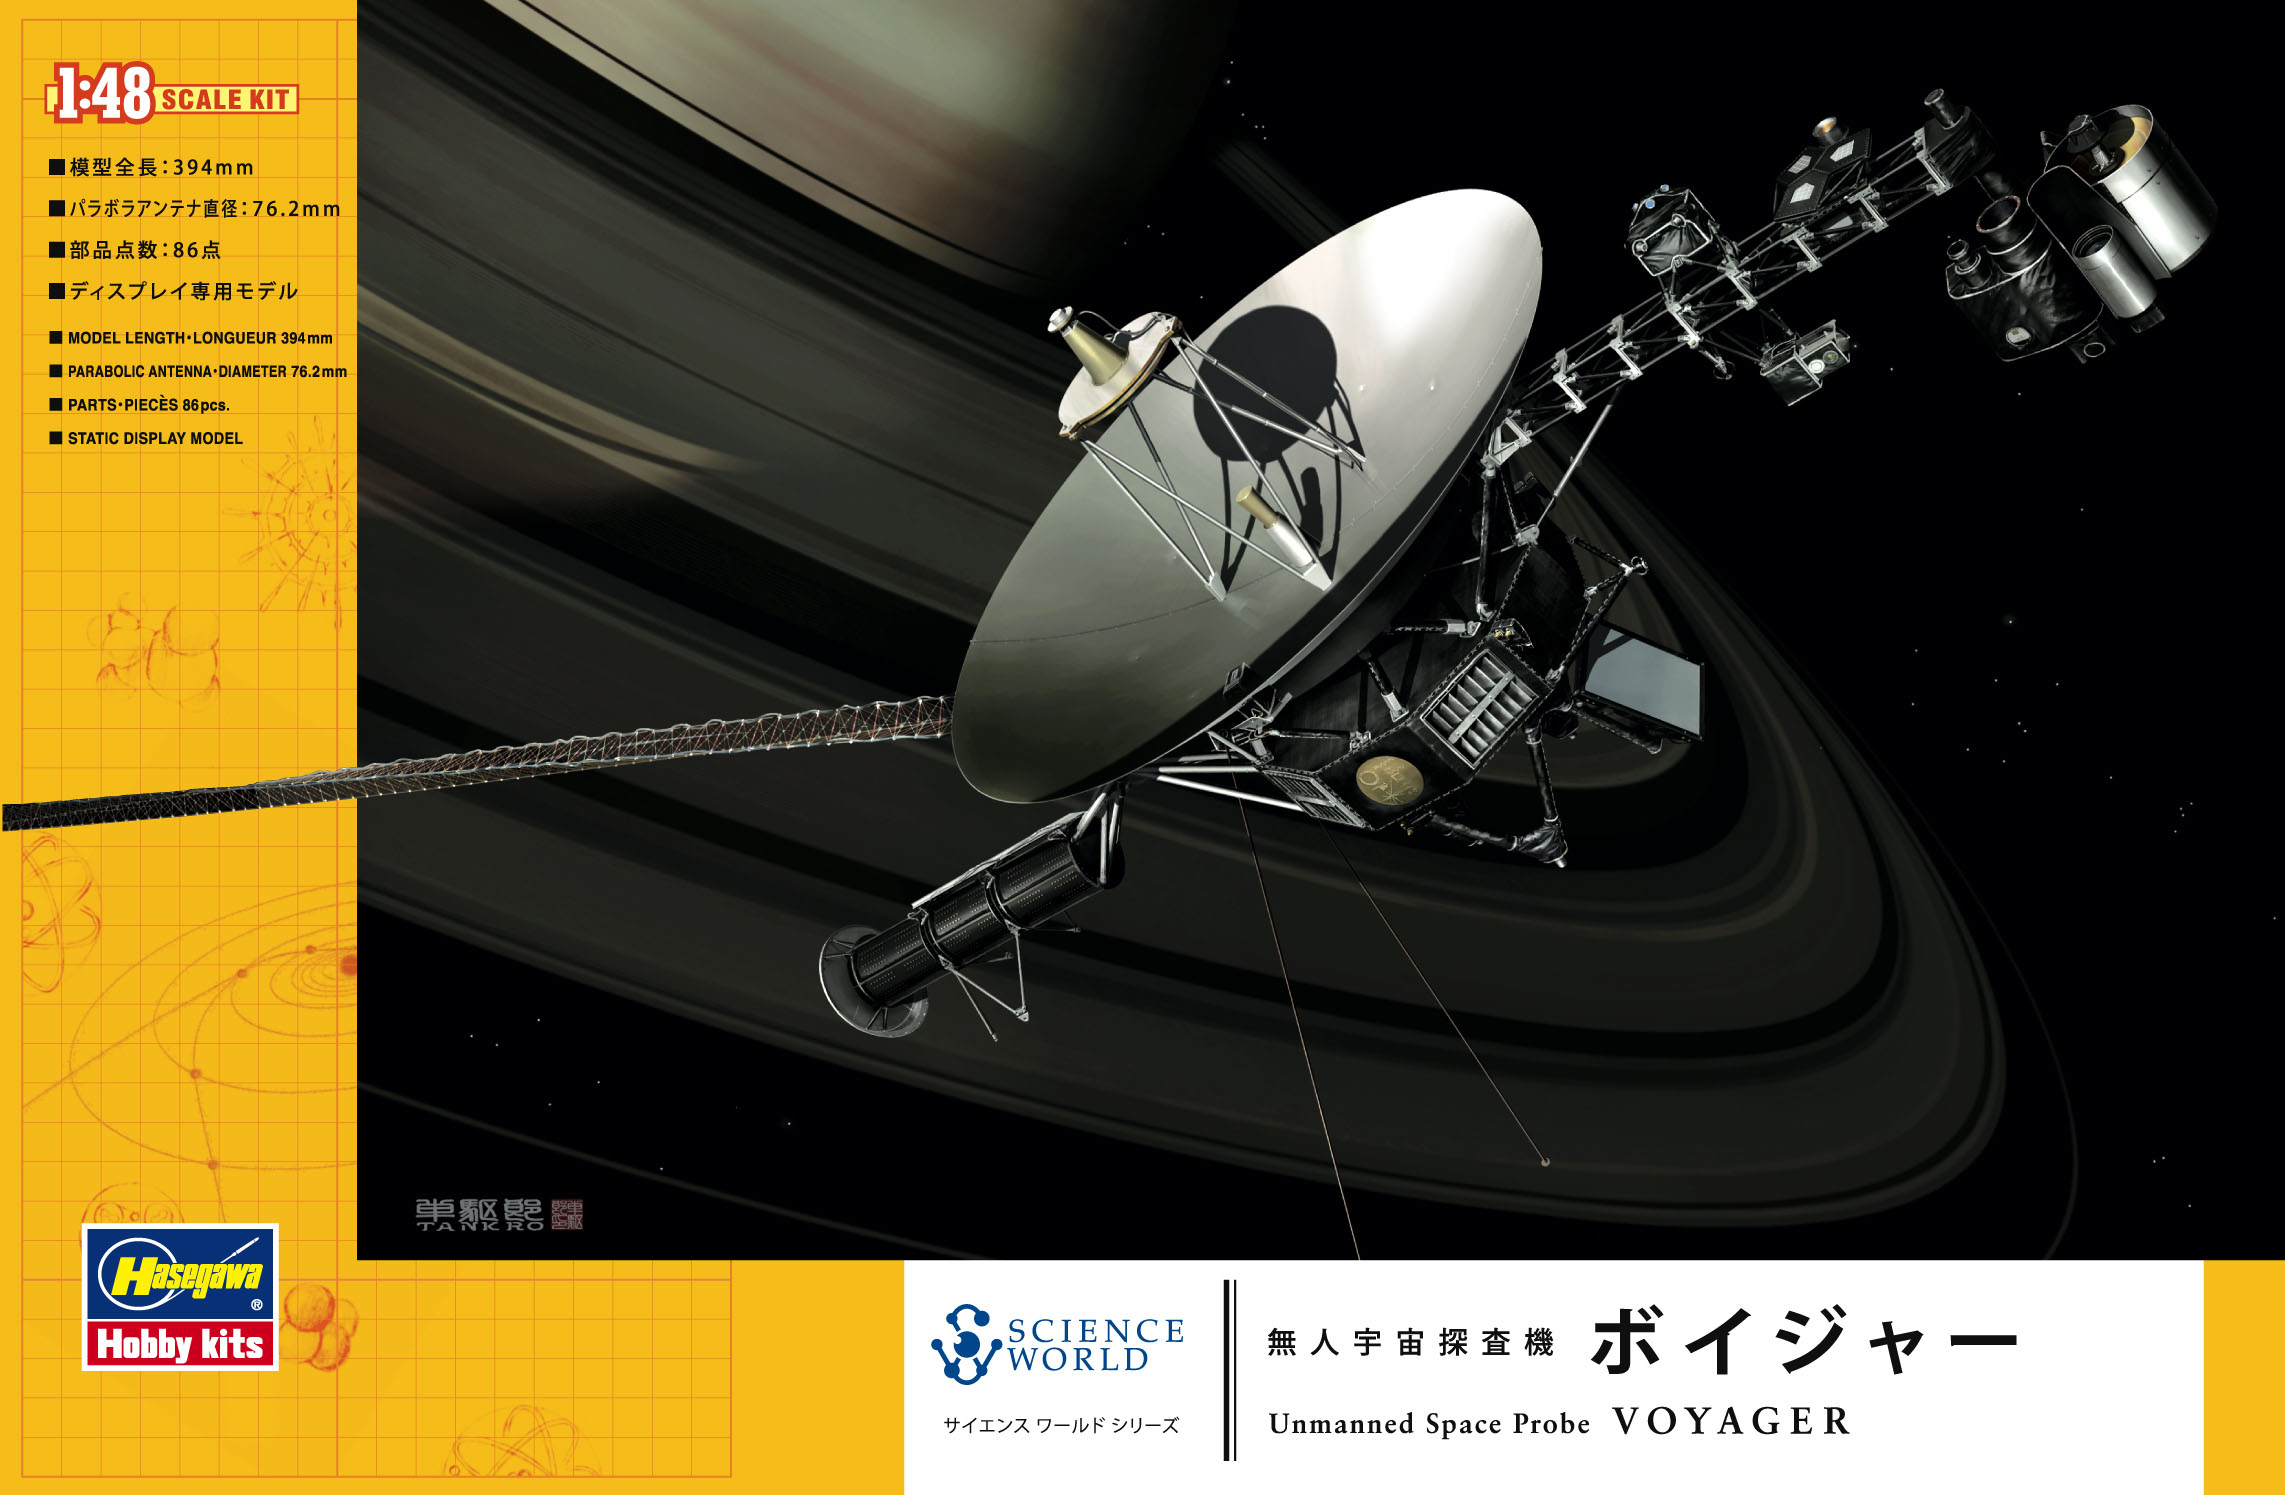 Hasegawa 1/48 Unmanned Space Probe Voyager